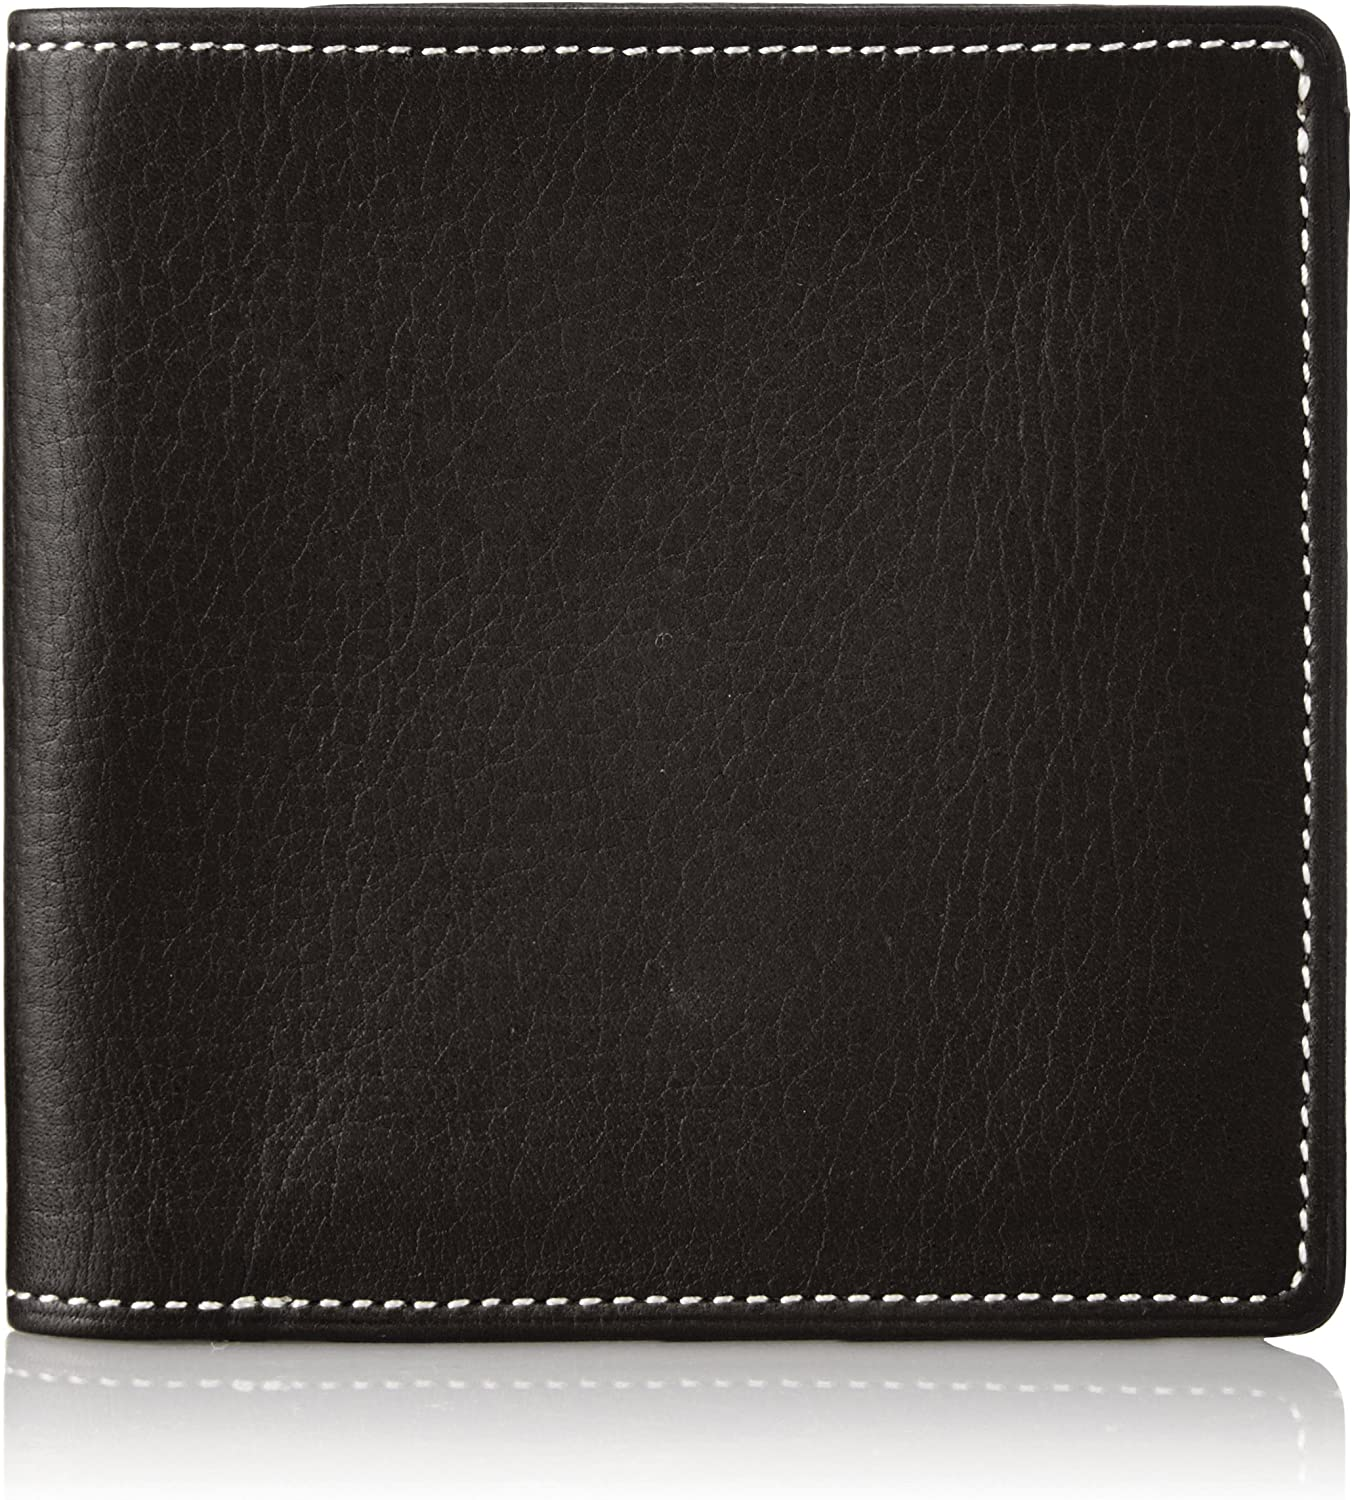 ITOYA Romeo Year-end annual account Black Max 45% OFF Wallet